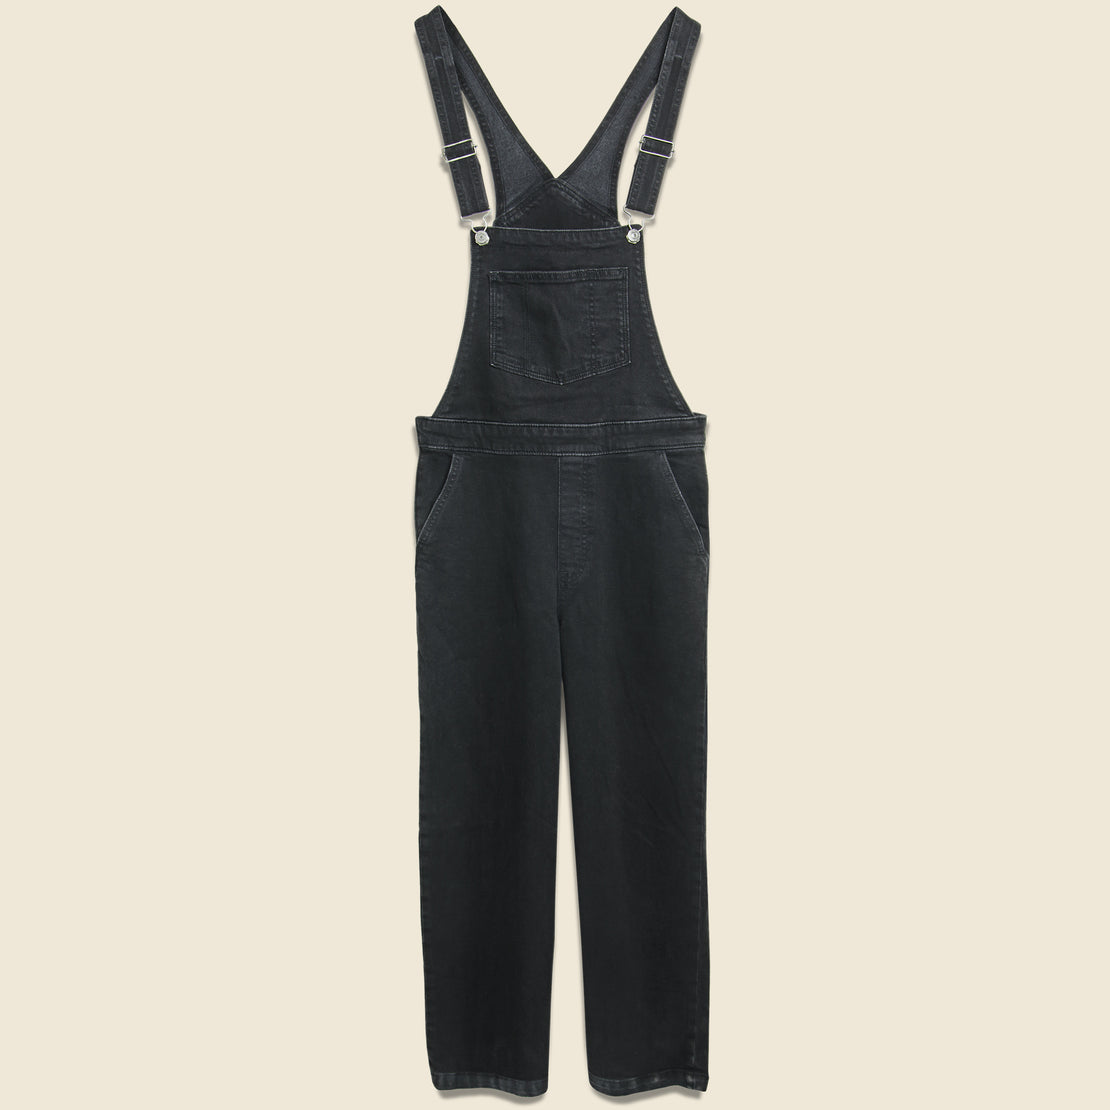 Levis Premium Ribcage Wide Leg Crop Overall - Black Book